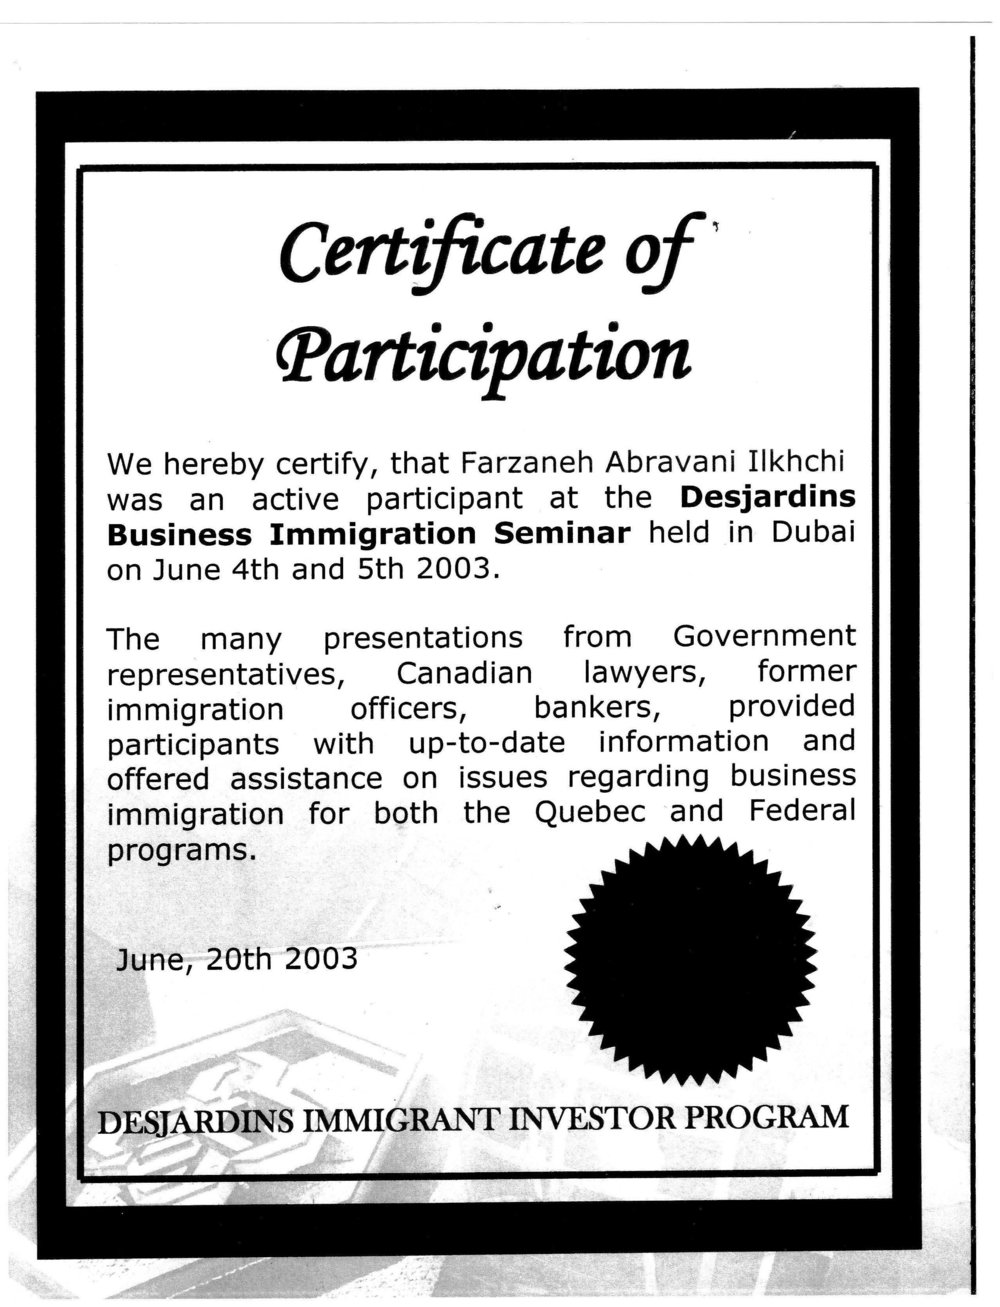 Agent certiifcate_Page_02.jpg